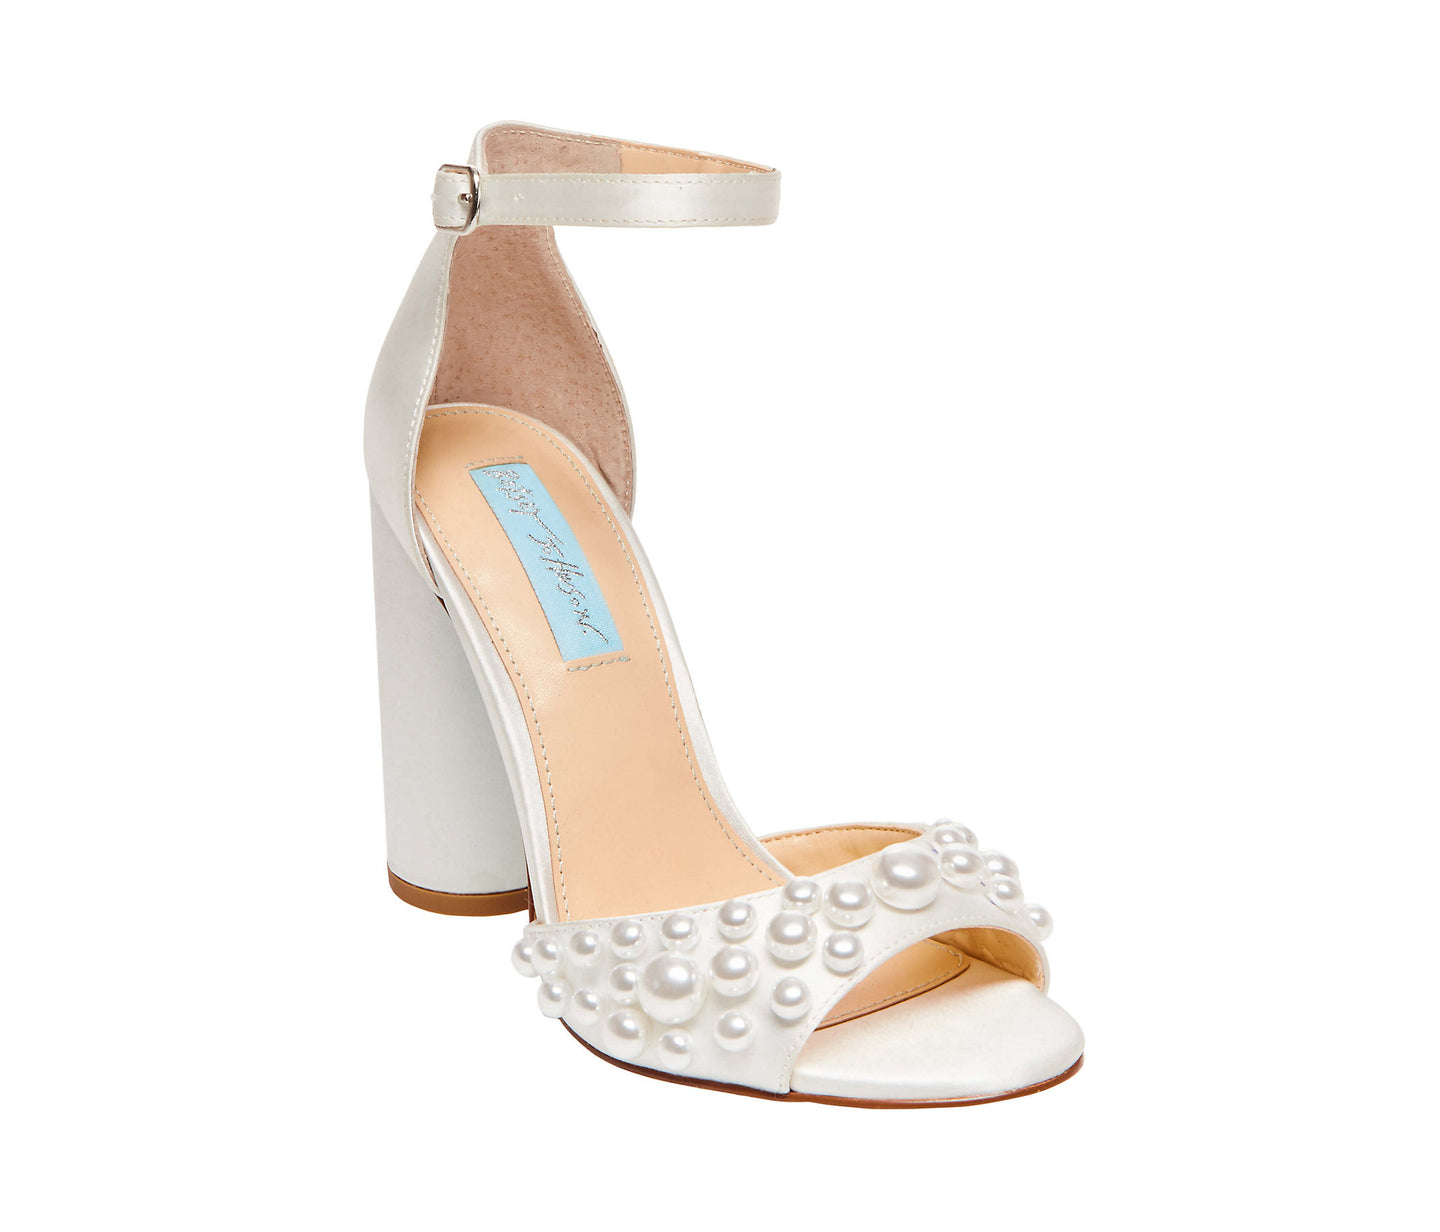 SB-CARA IVORY SATIN - SHOES - Betsey Johnson